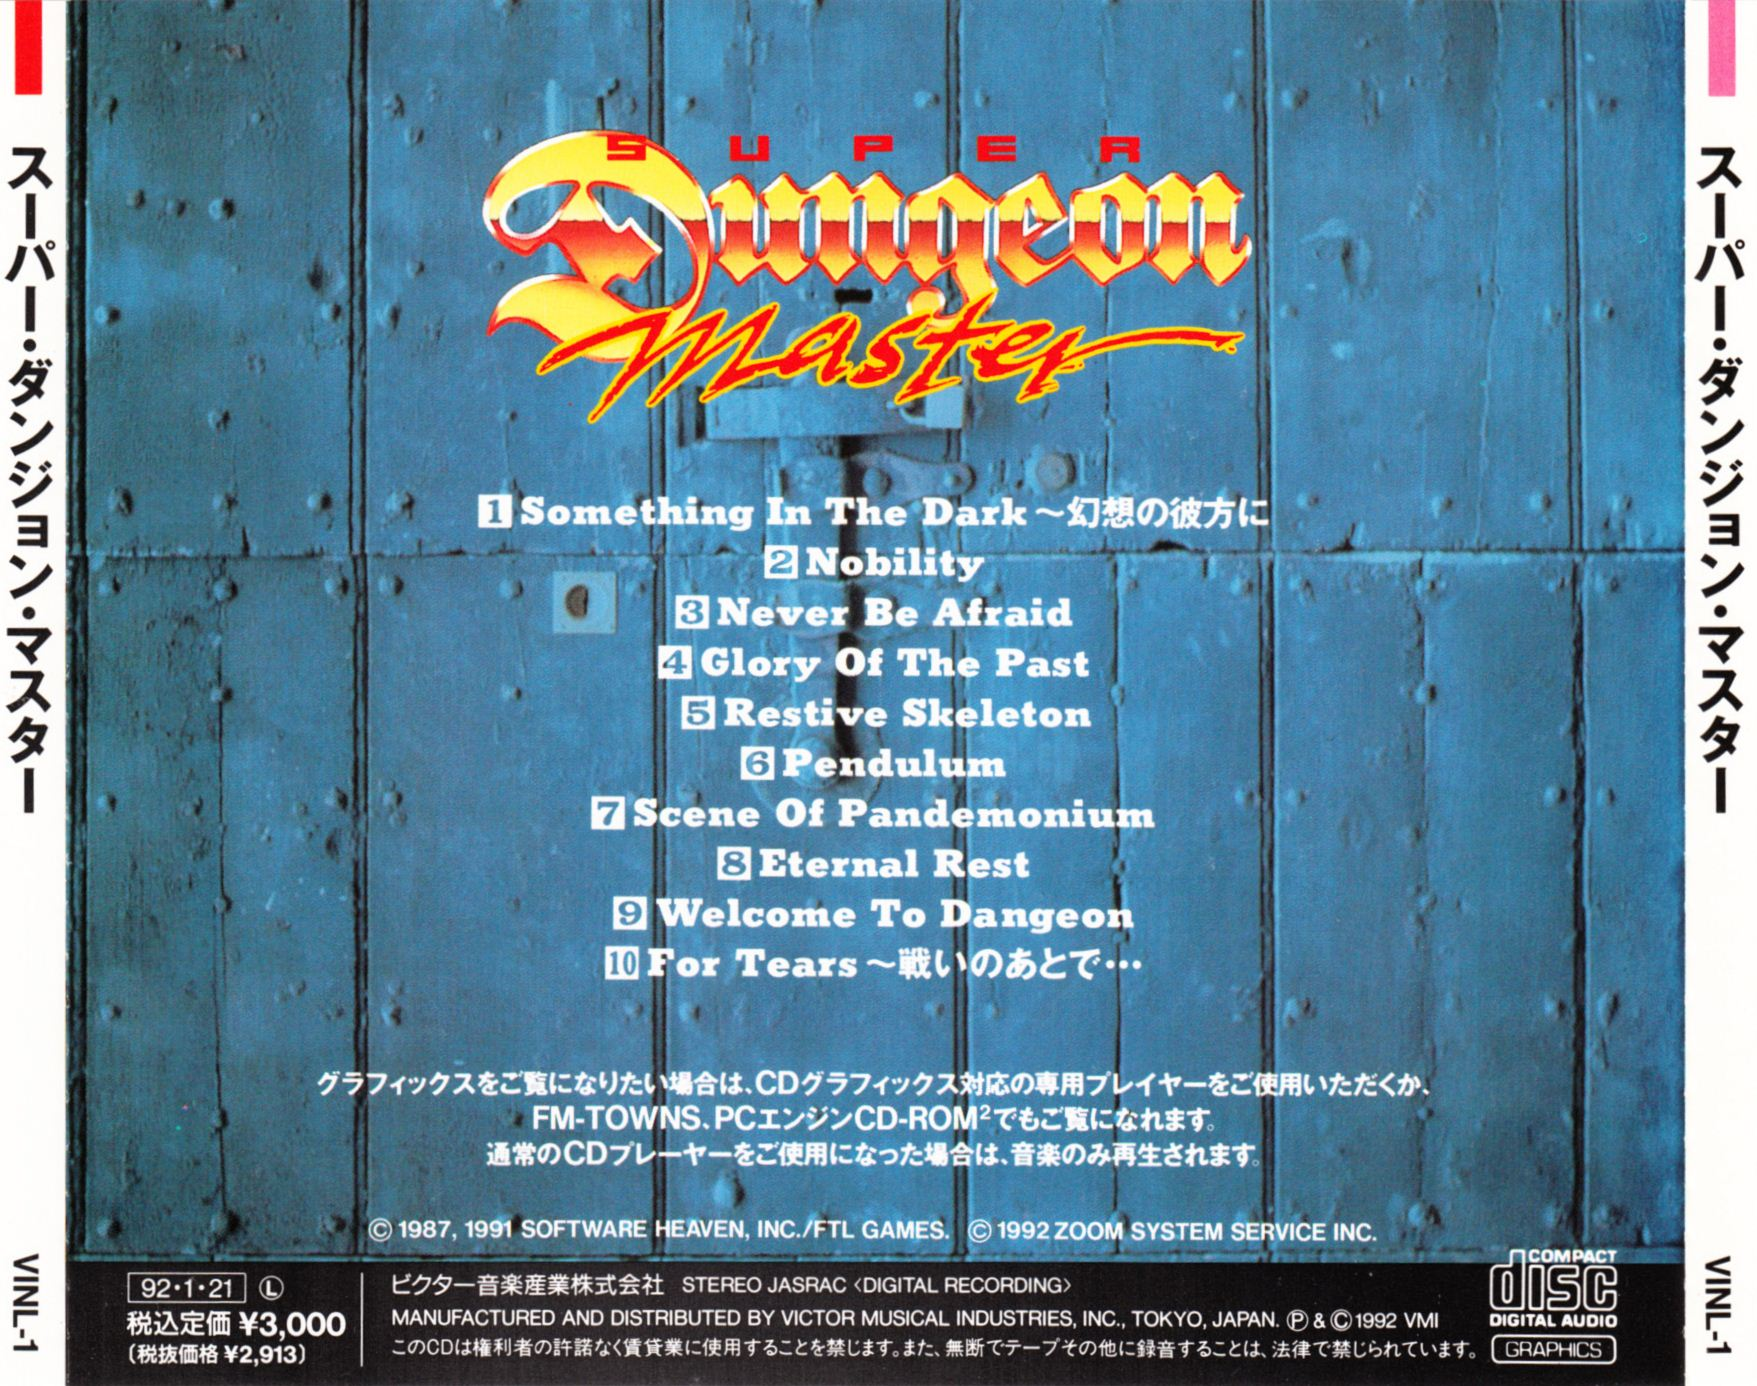 Audio CD - Super Dungeon Master - JP - Back Card - Front - Scan